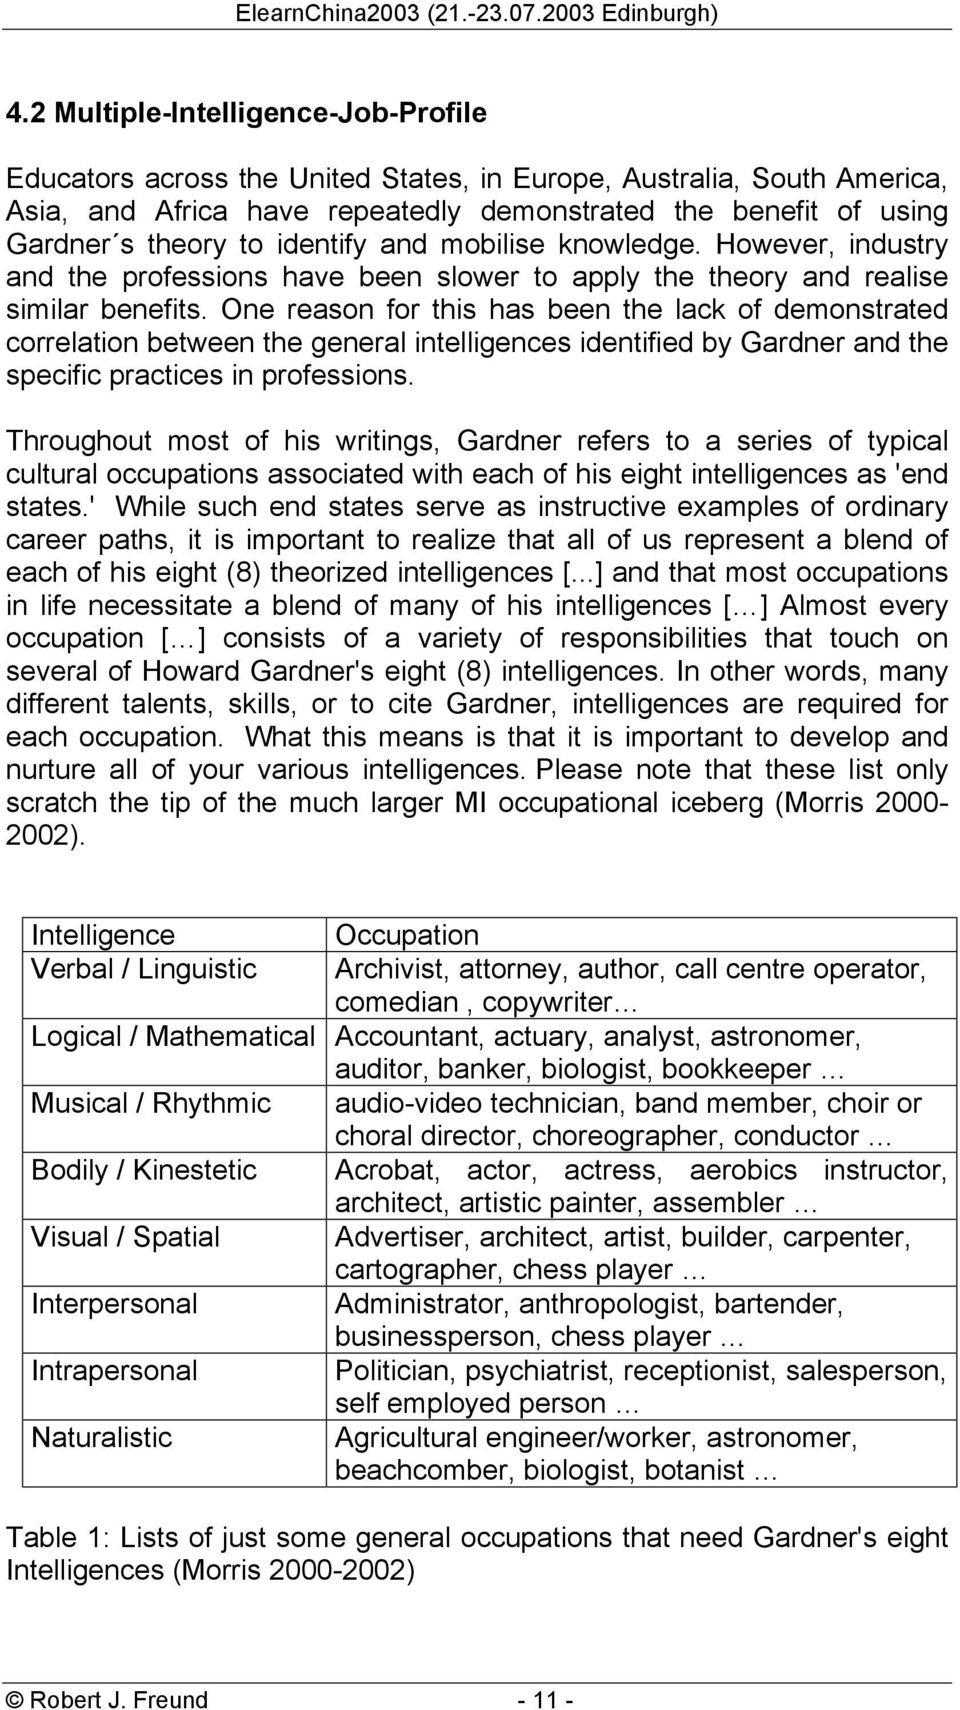 One reason for this has been the lack of demonstrated correlation between the general intelligences identified by Gardner and the specific practices in professions.